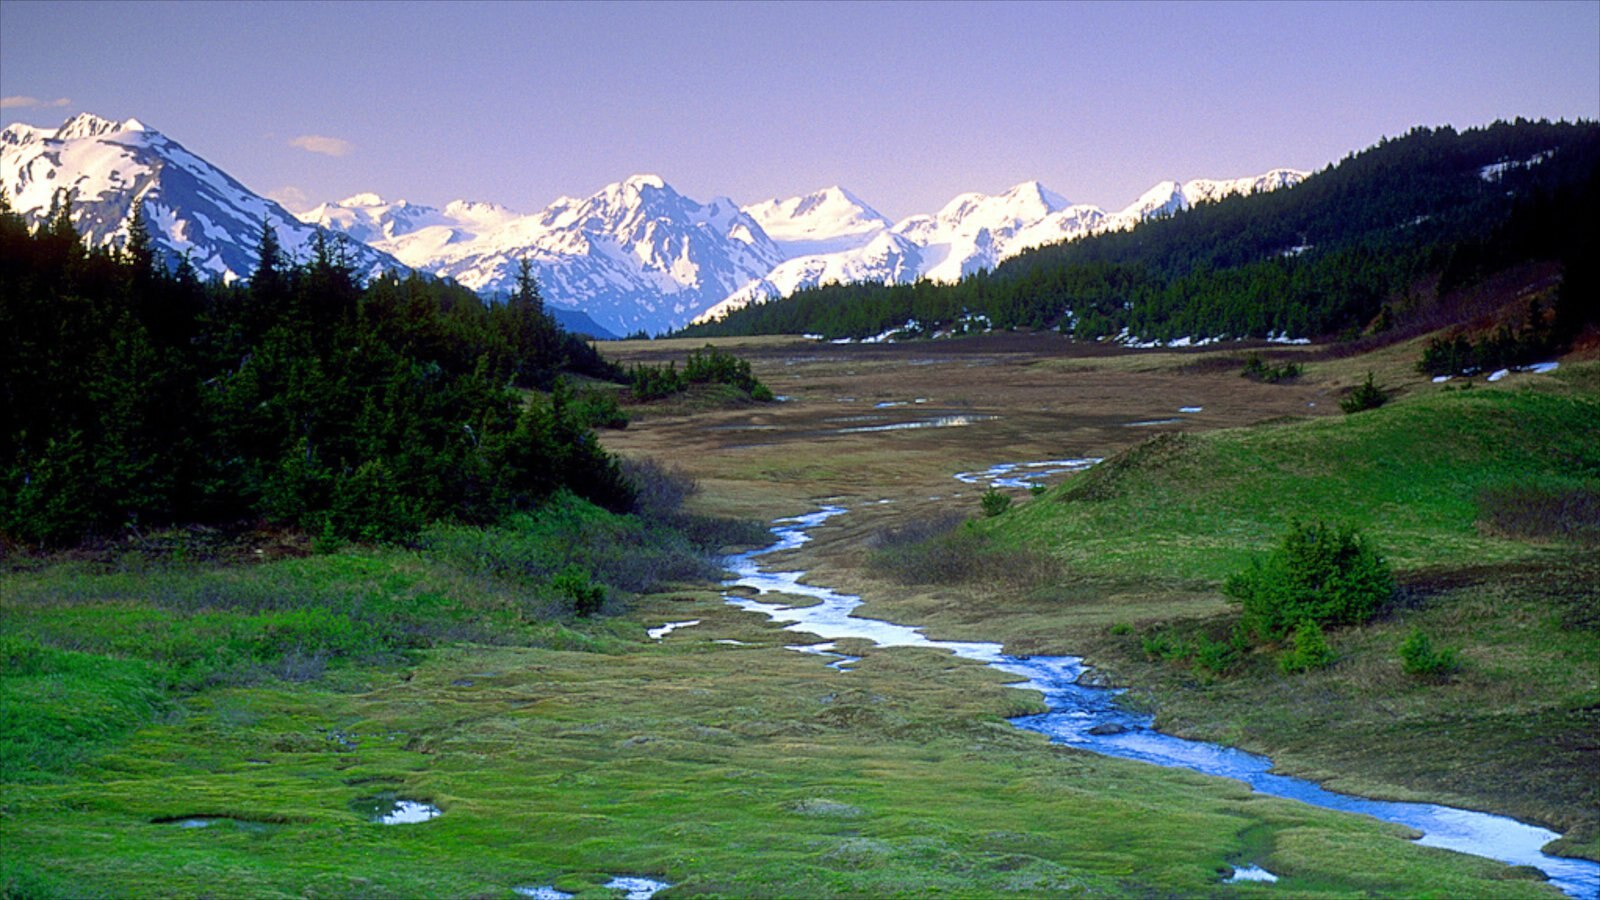 Anchorage showing snow, tranquil scenes and mountains